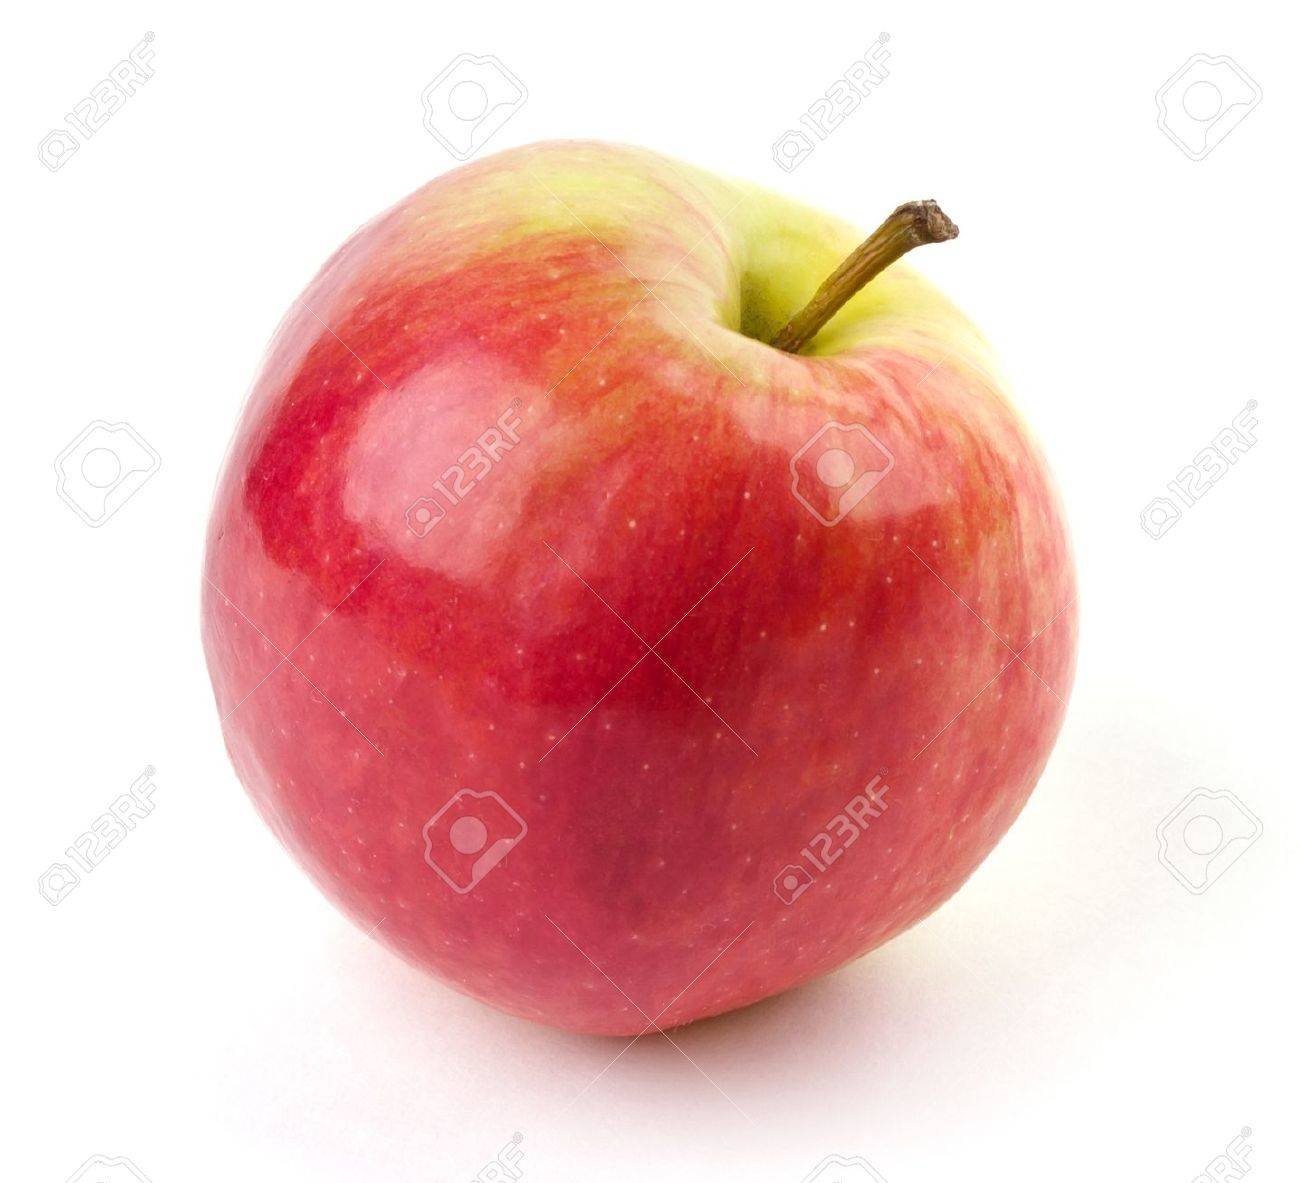 Ripe juicy apple isolated on white background Stock Photo - 9849406